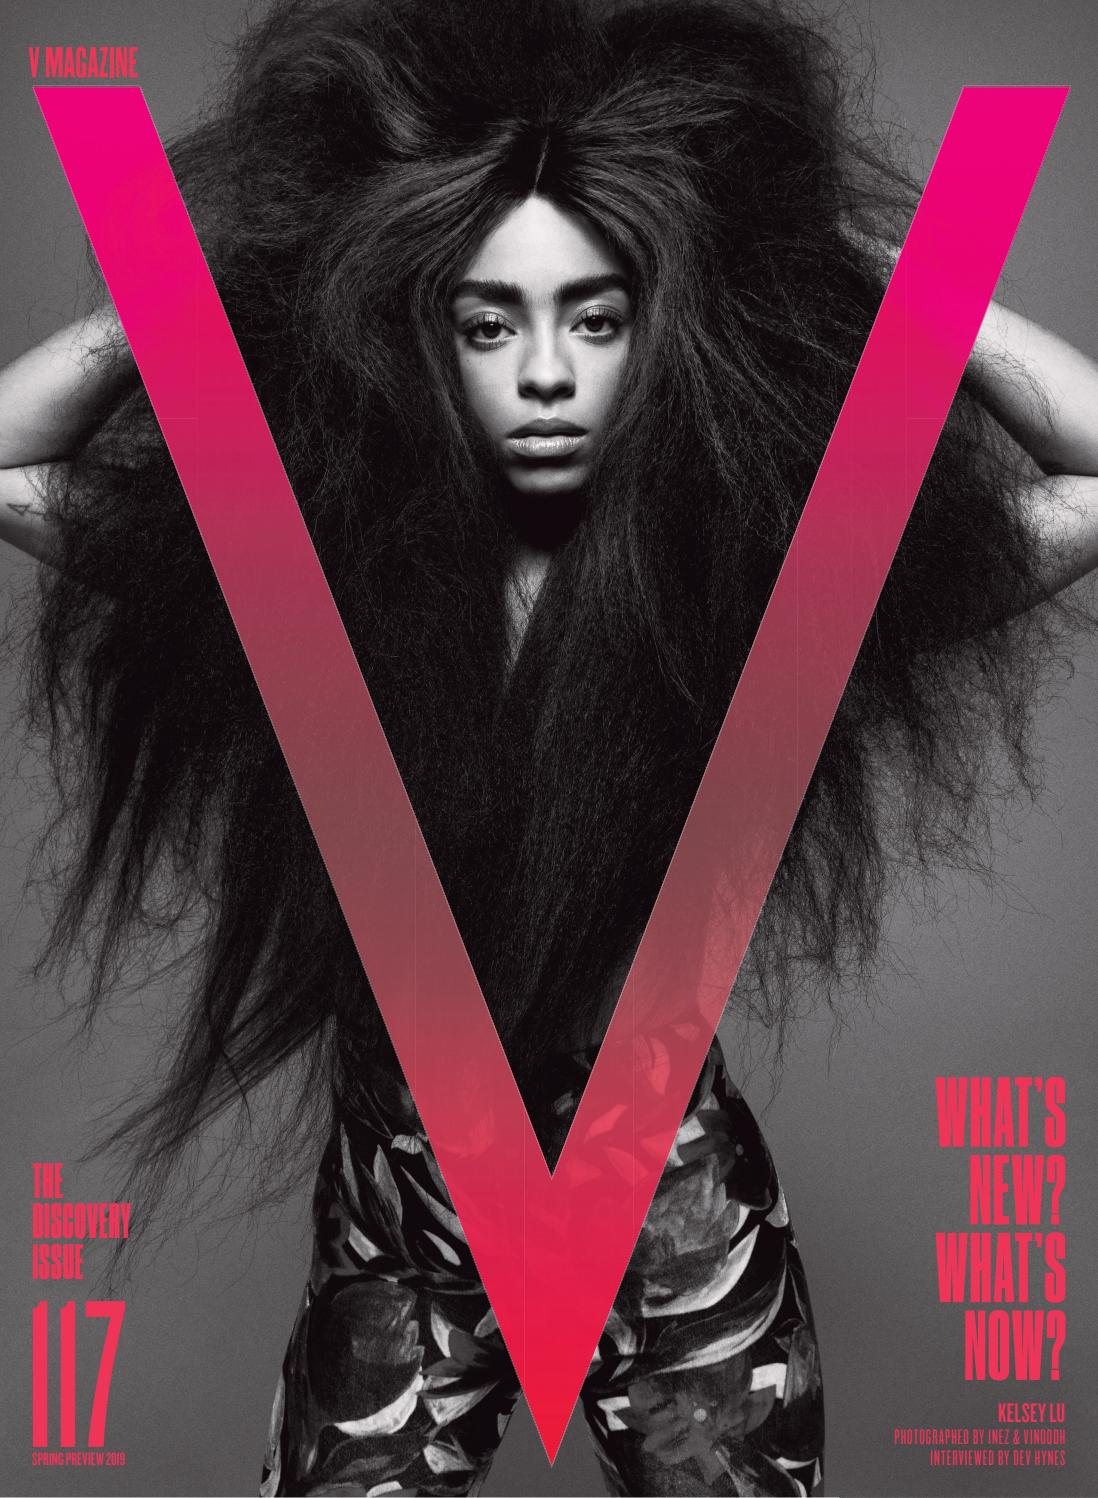 a178c5380646f V117: The Discovery Issue with Kelsey Lu by V Magazine - issuu